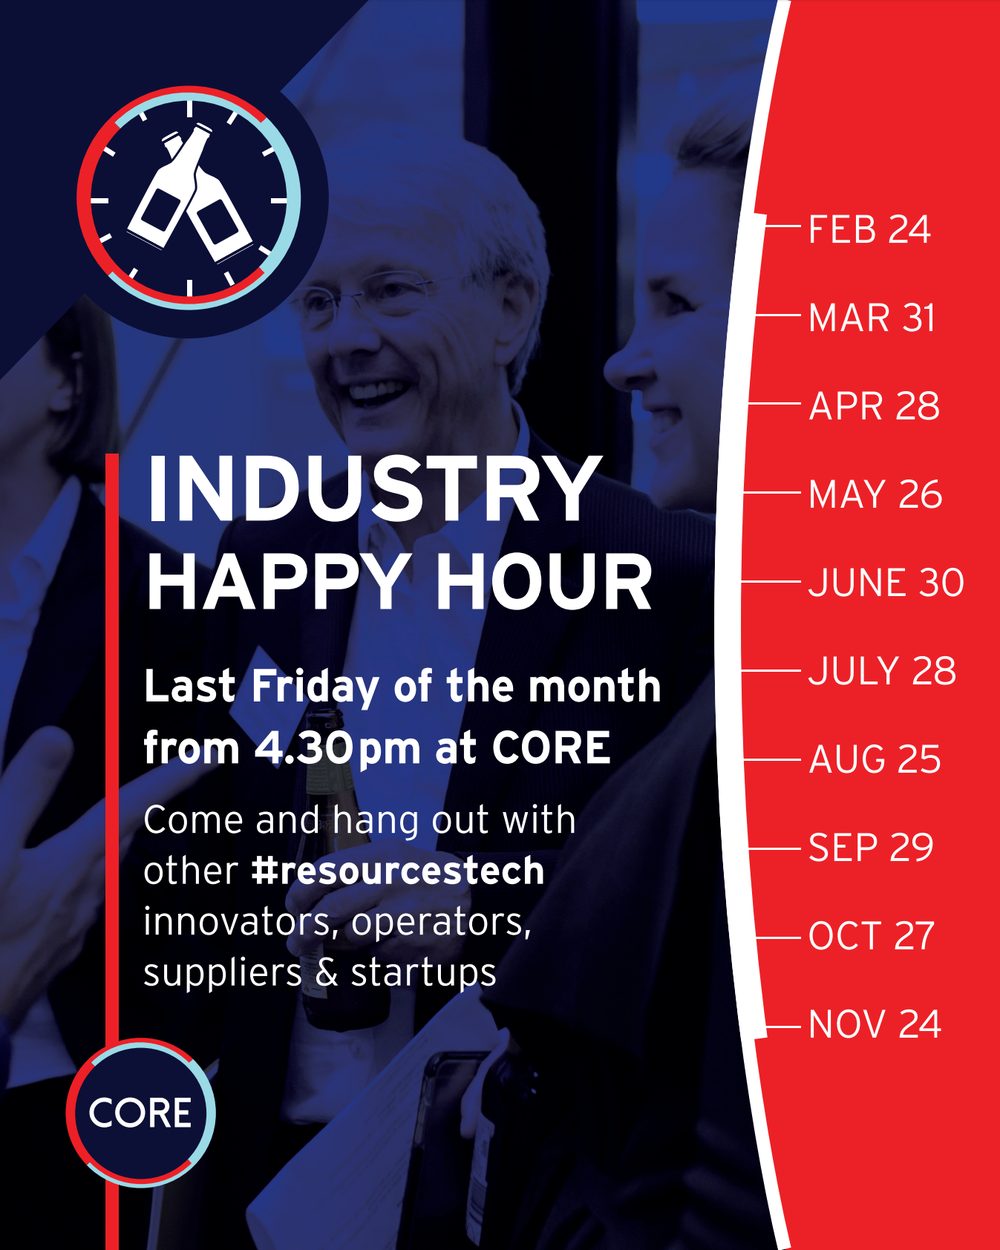 core-industry-happy-hour